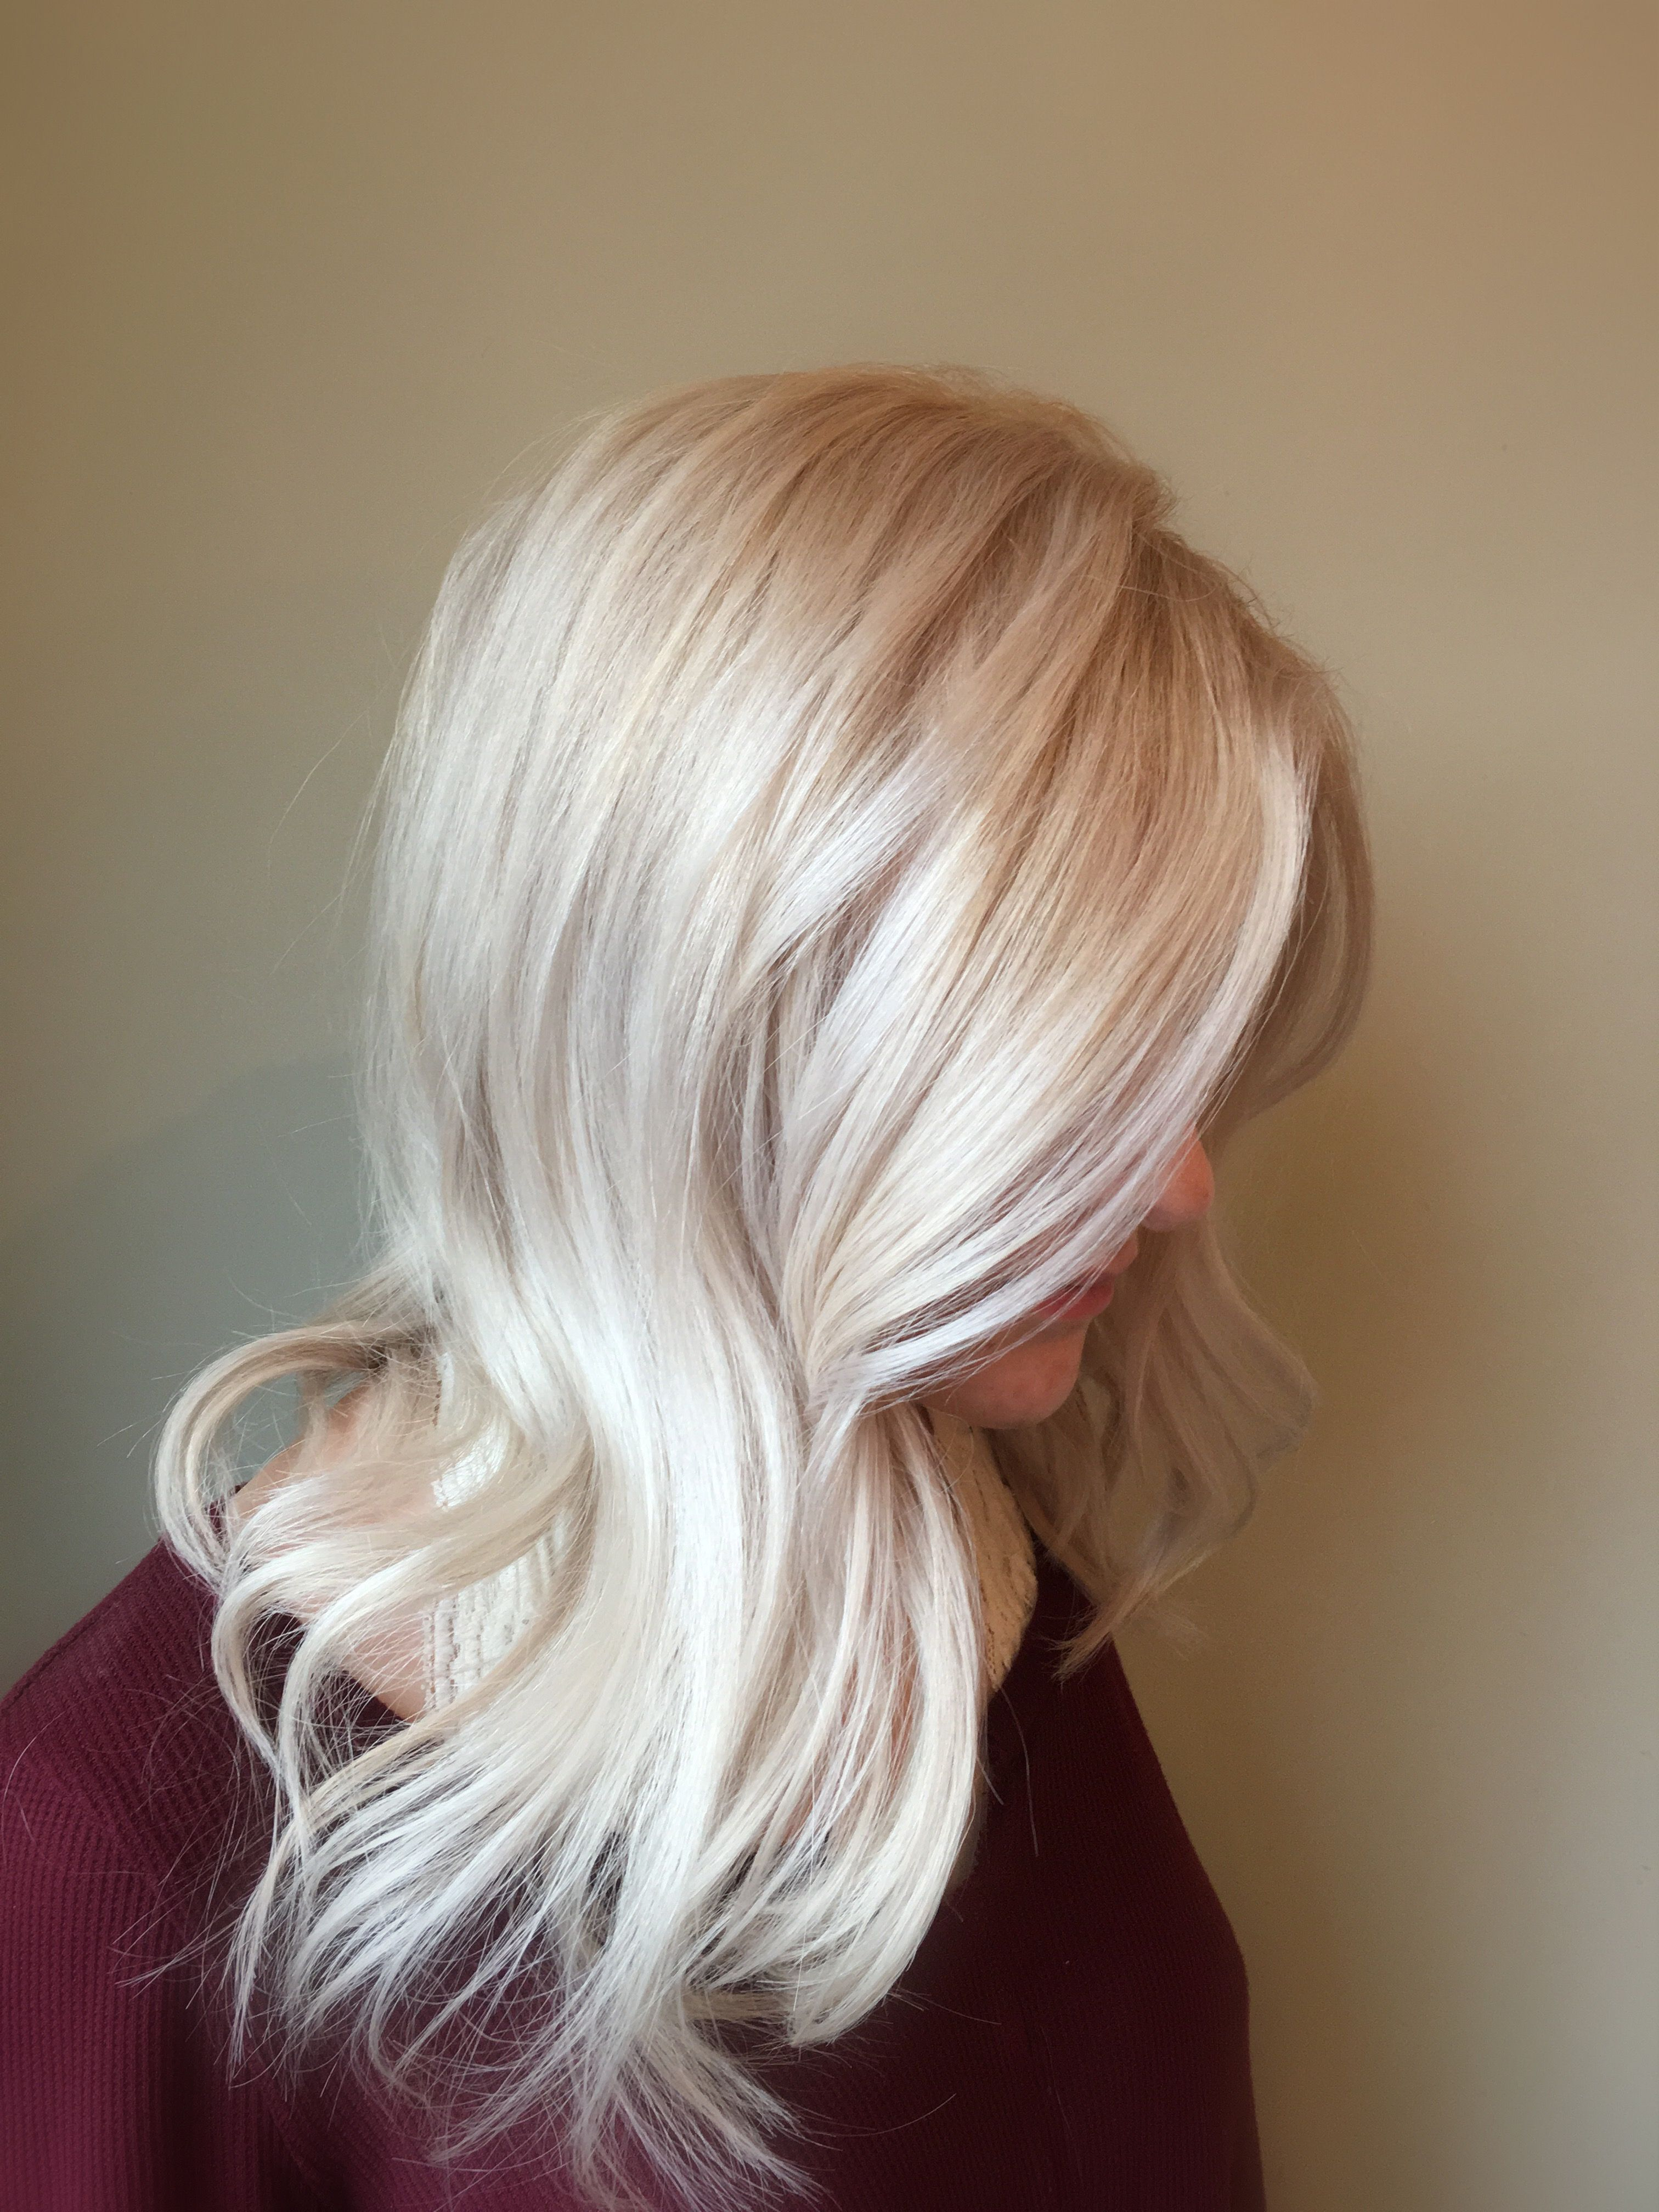 Blonde Hair Trends 2017 Winter White Pale And Cool Tones For A